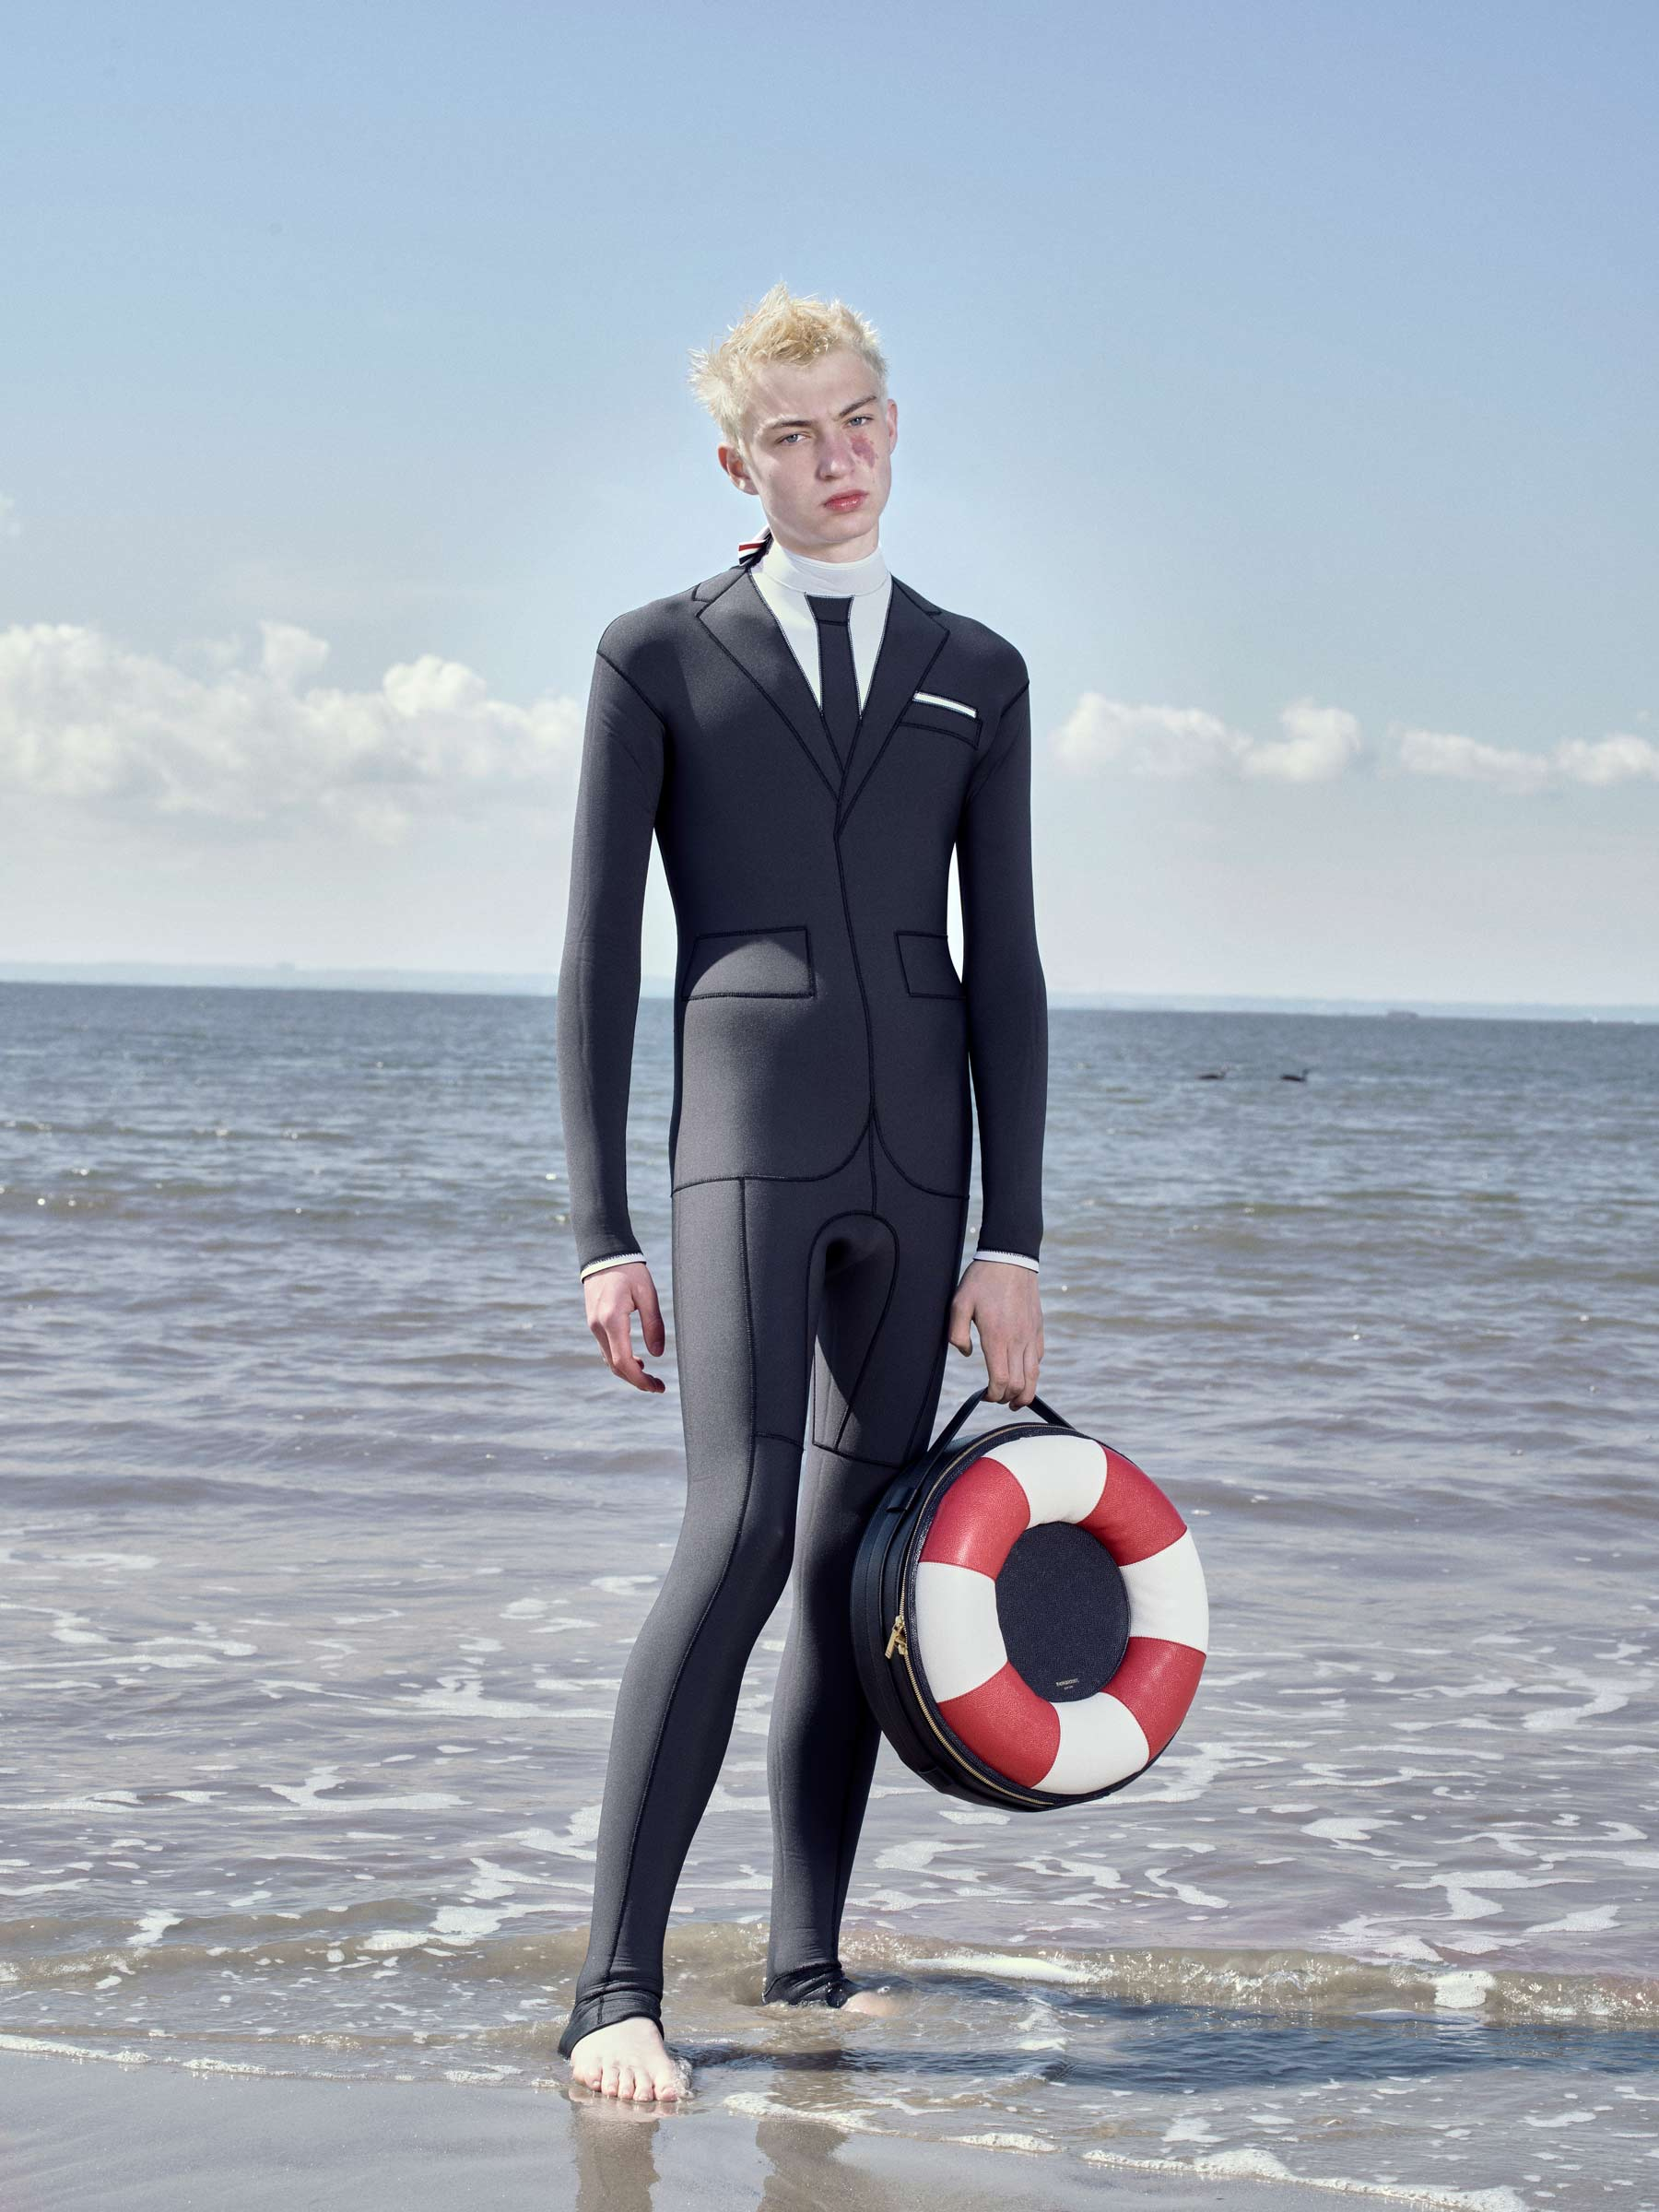 Thom Browne Watersuits Dive Into Document Journals Surf League  Vanity Teen